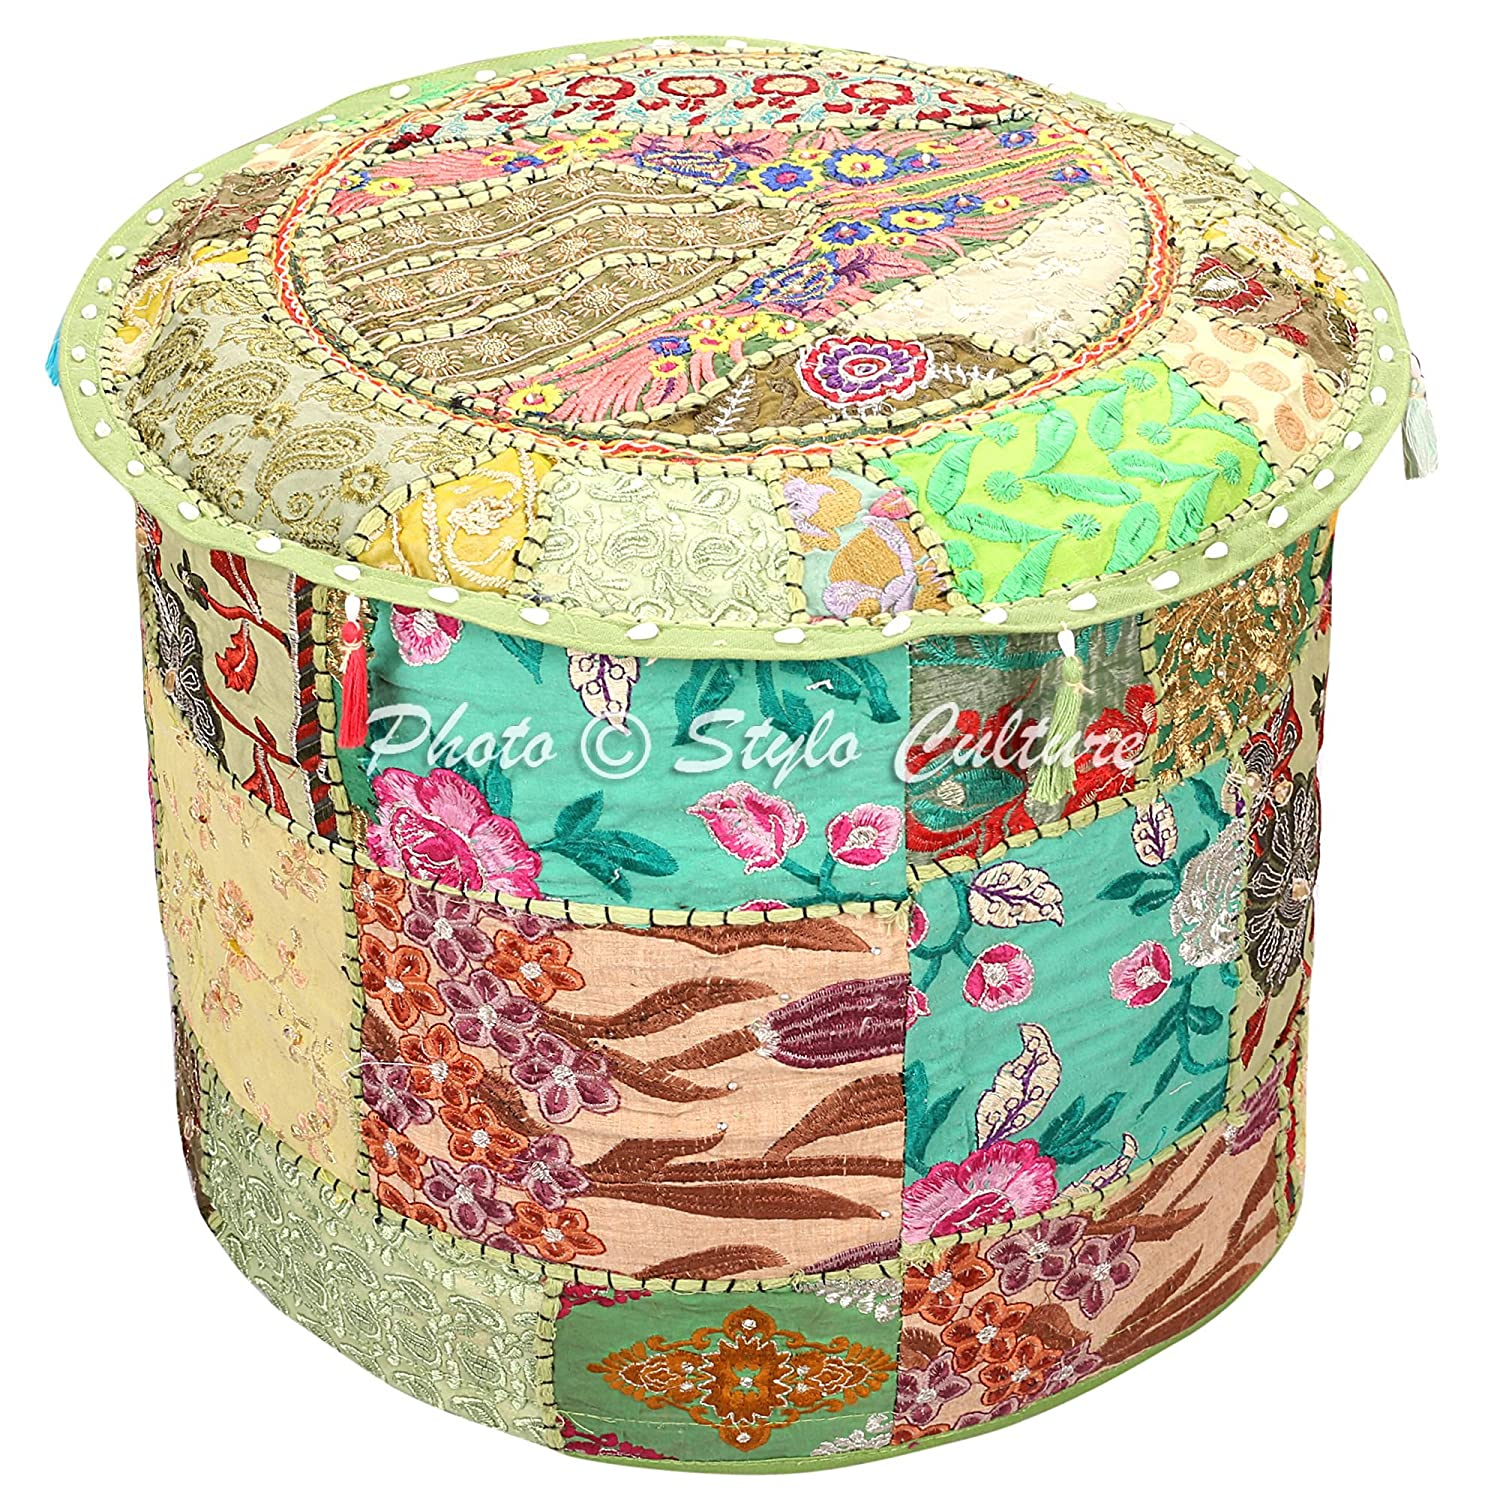 Stylo Culture Indian Vintage Pouf Ottoman Foot Stool Cover Round Patchwork Embroidered Pouffe Ottoman Cover Green Cotton Floral Traditional Furniture Footstool Seat Puff Cover (16x16x13) SC-POUF00104